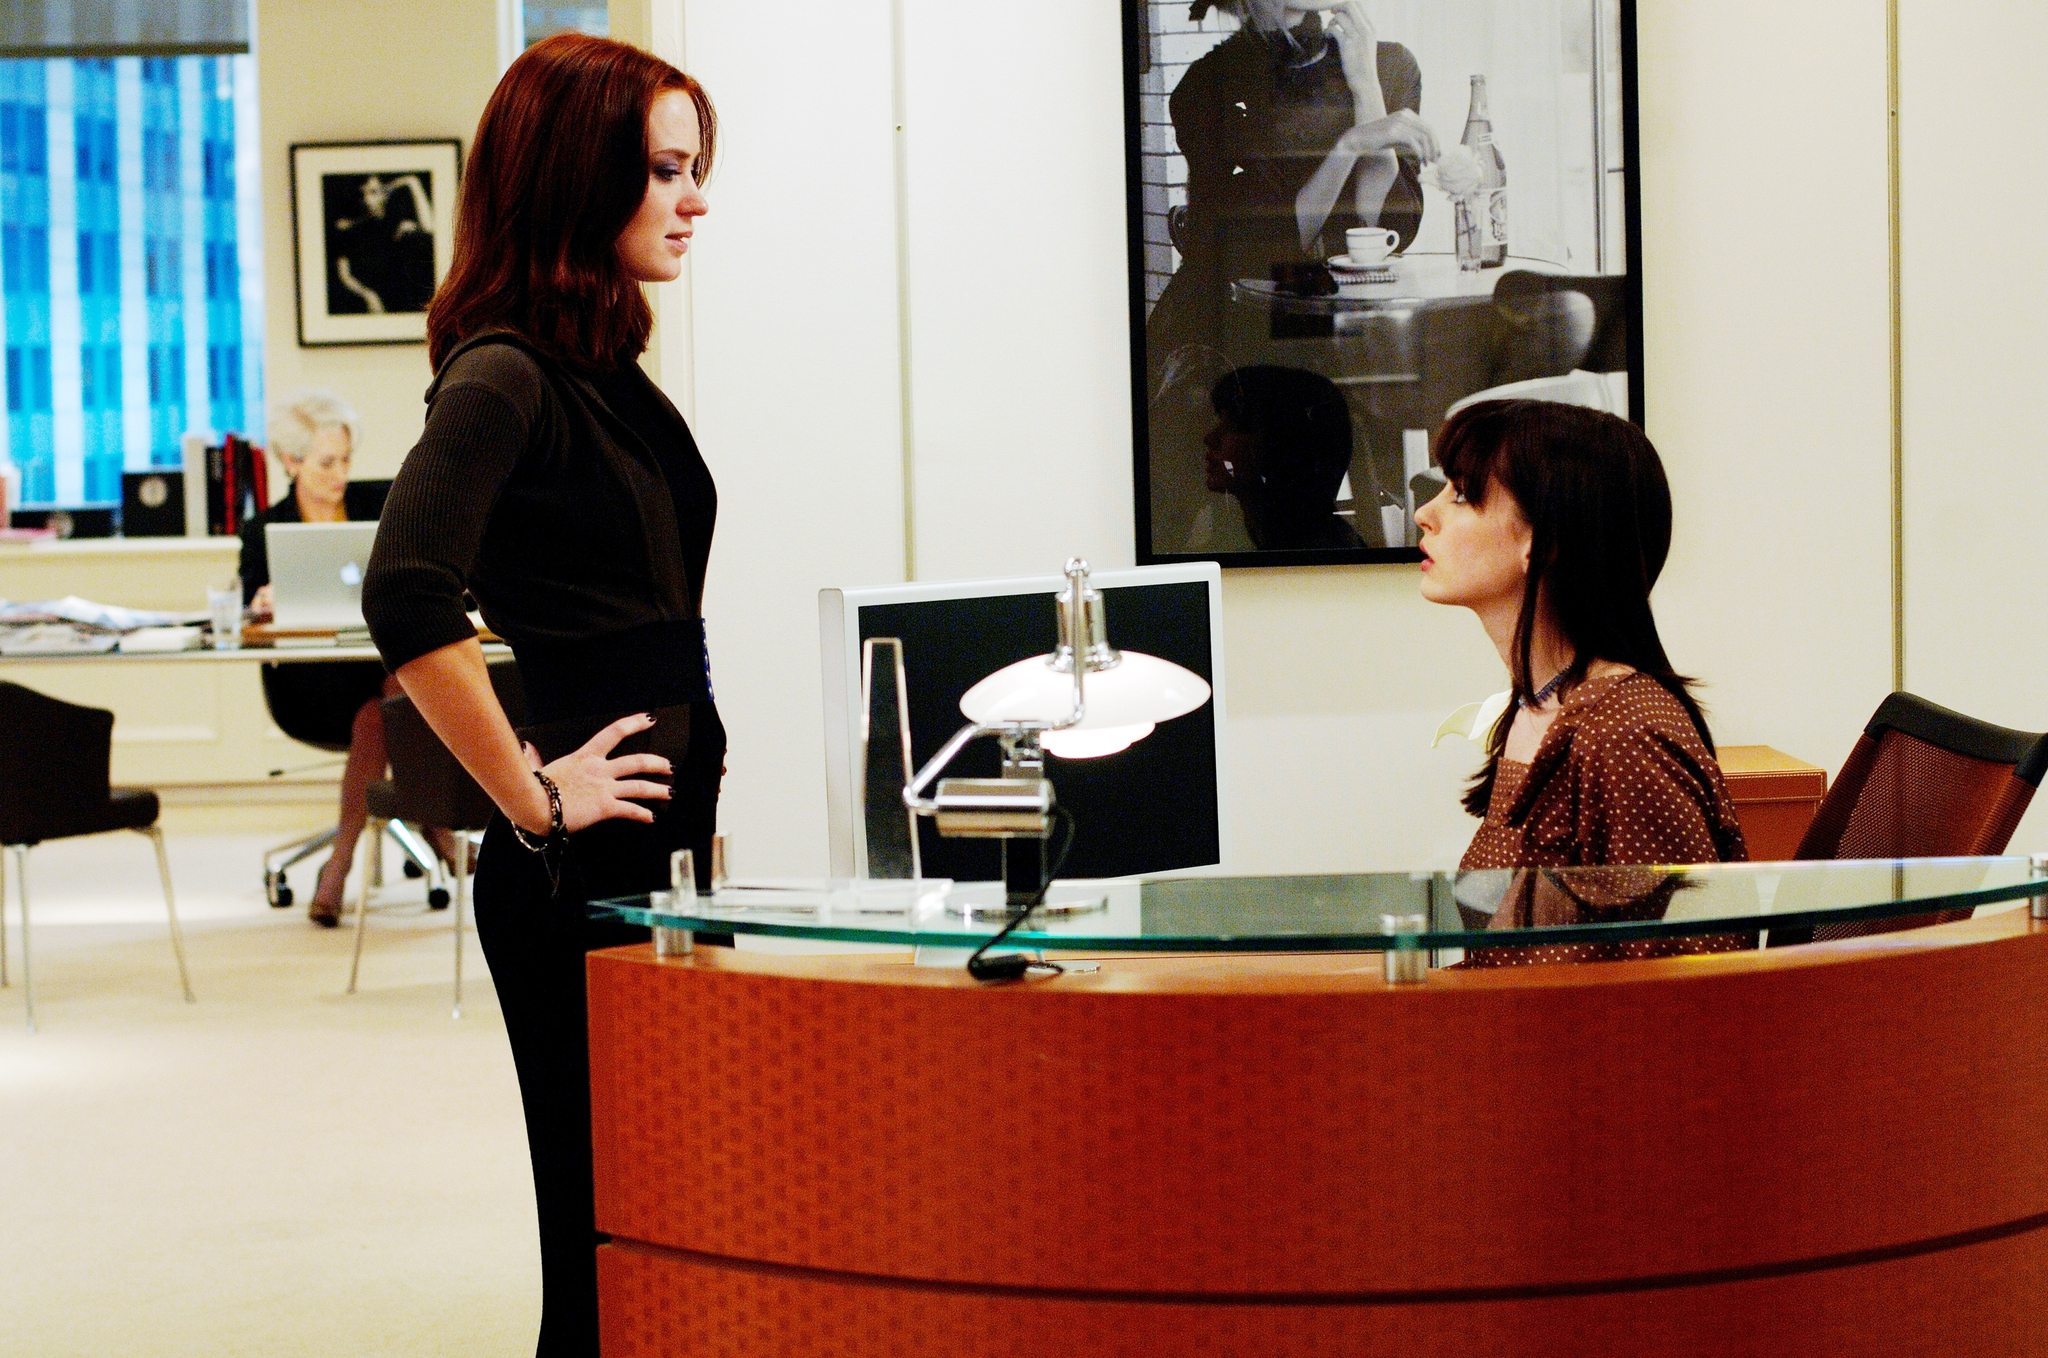 Anne Hathaway and Emily Blunt in The Devil Wears Prada (2006)